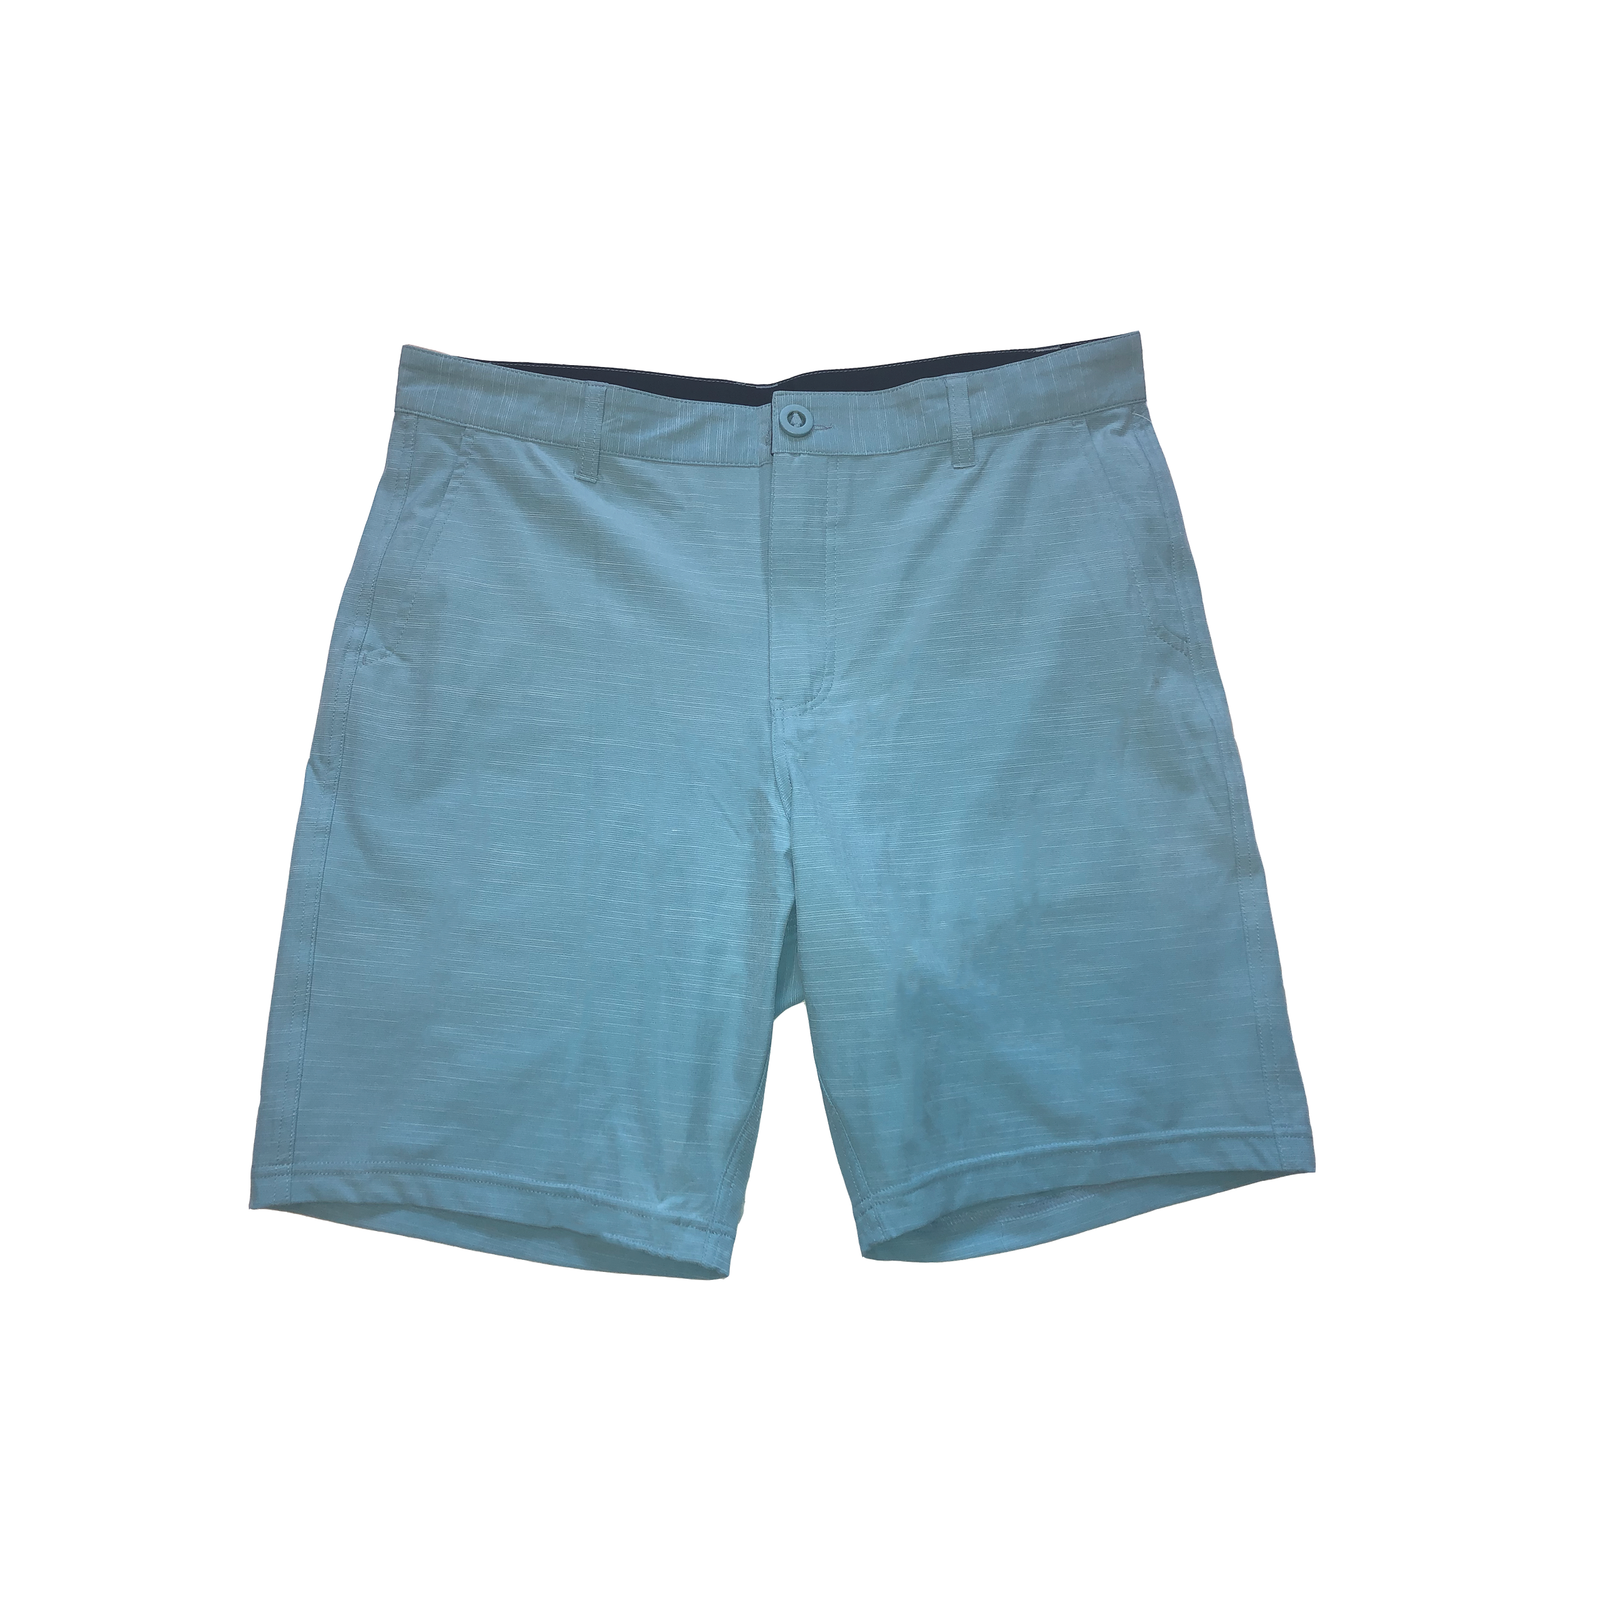 The Walkabout - Light Blue Hybrid Walk Shorts